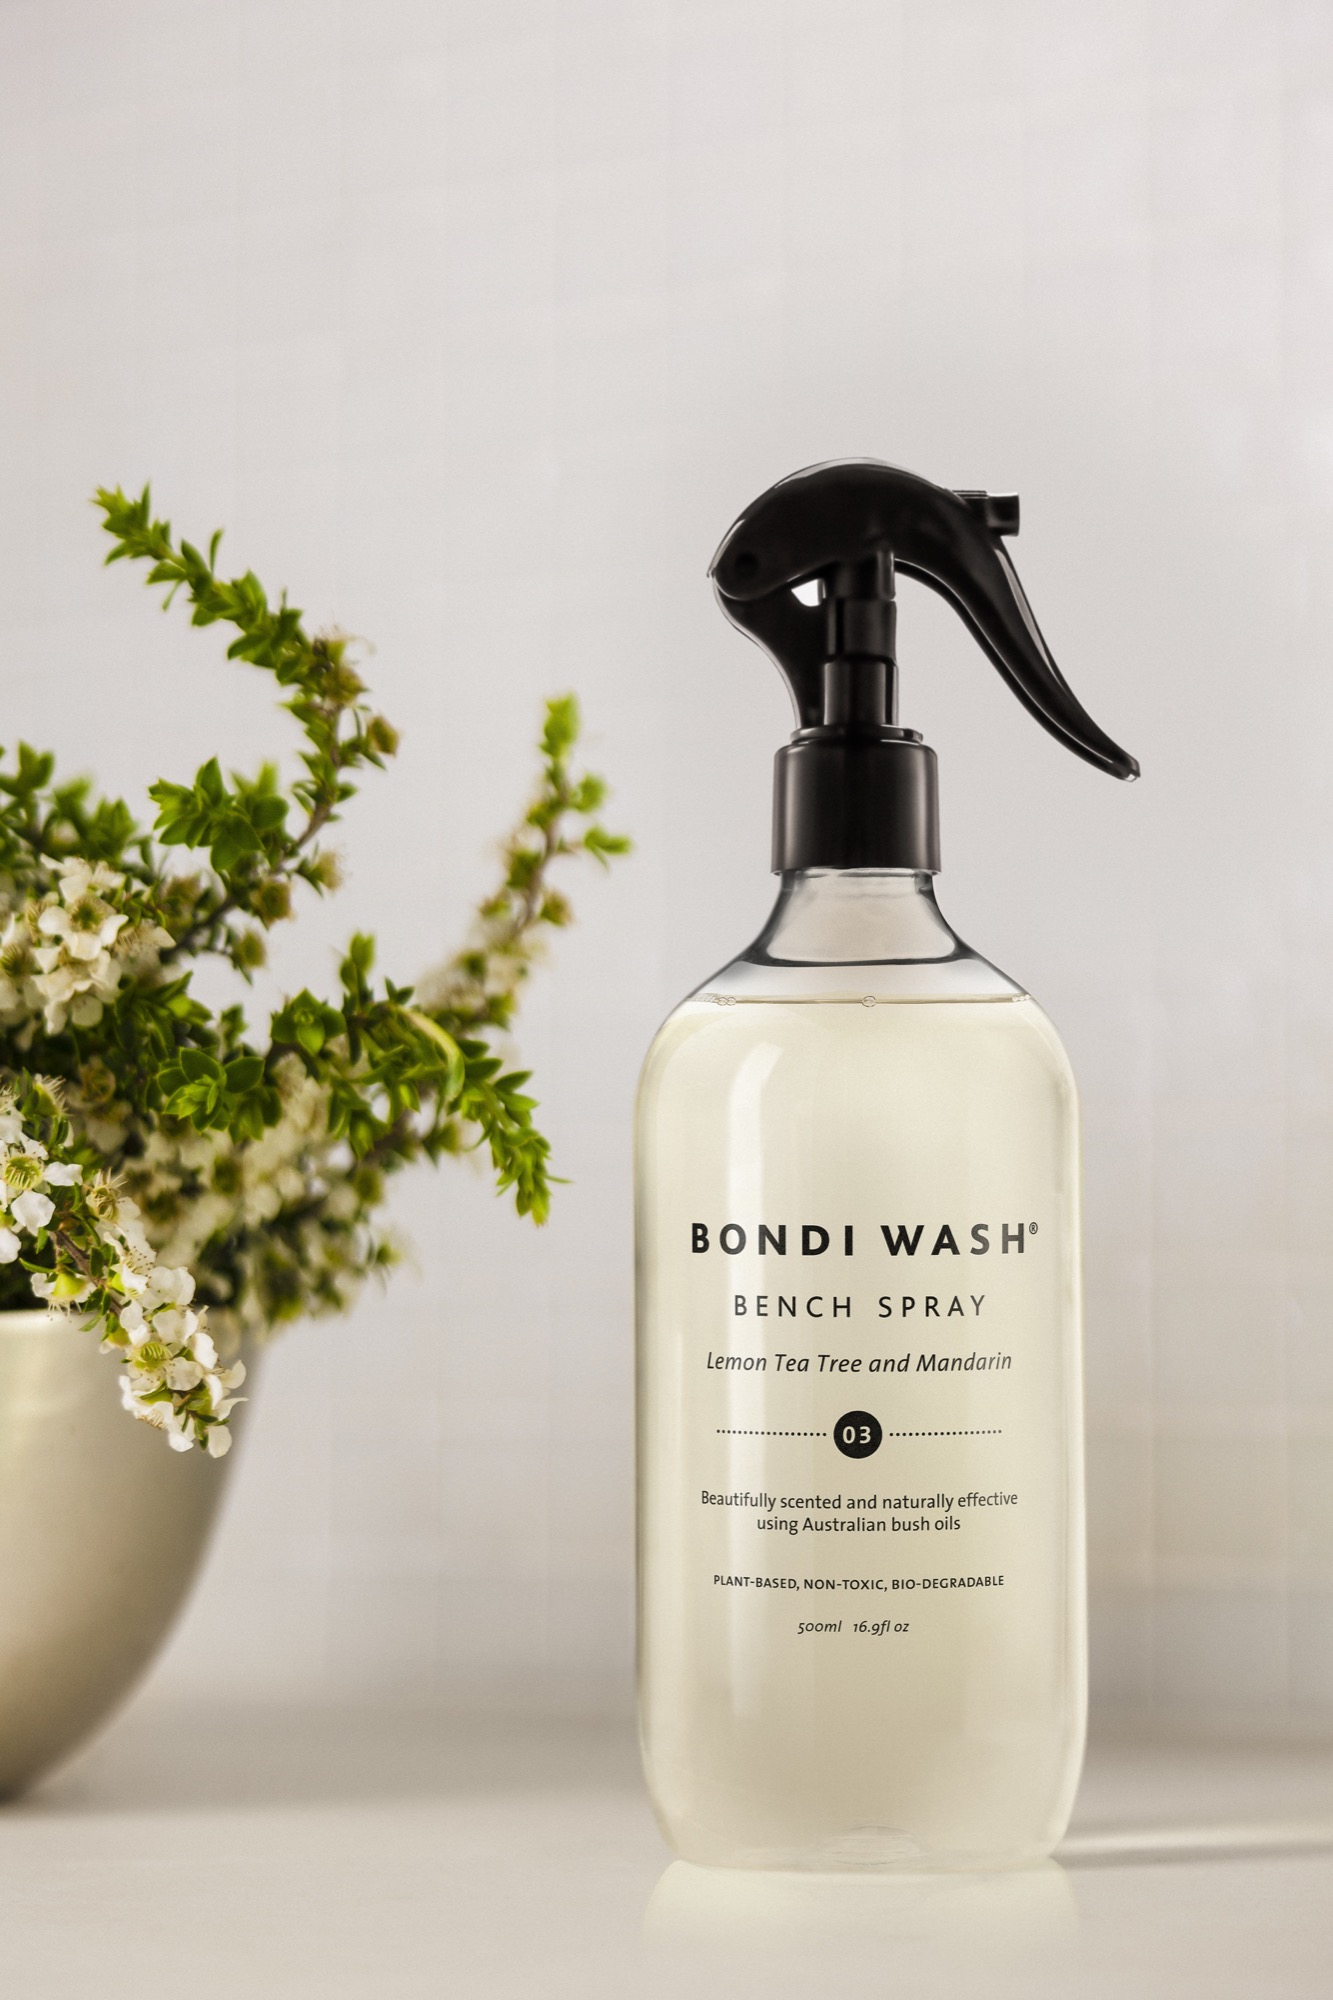 ABOUT BONDI WASH - BONDI WASH products are 99-100% plant-based. Nothing nasty – the only non plant-derived ingredients are food grade preservatives used to ensure the products are shelf-stable. Products are non-toxic, bio-degradable and contain ingredients sourced from the best Australian suppliers.BONDI WASH fragrances have been designed like a perfume, starting with a beautiful Australian native botanicals. Other scents from Australia and around the world are then combined to include top notes, middle notes and base notes. All scents are completely plant-derived. They never use synthetic fragrance.